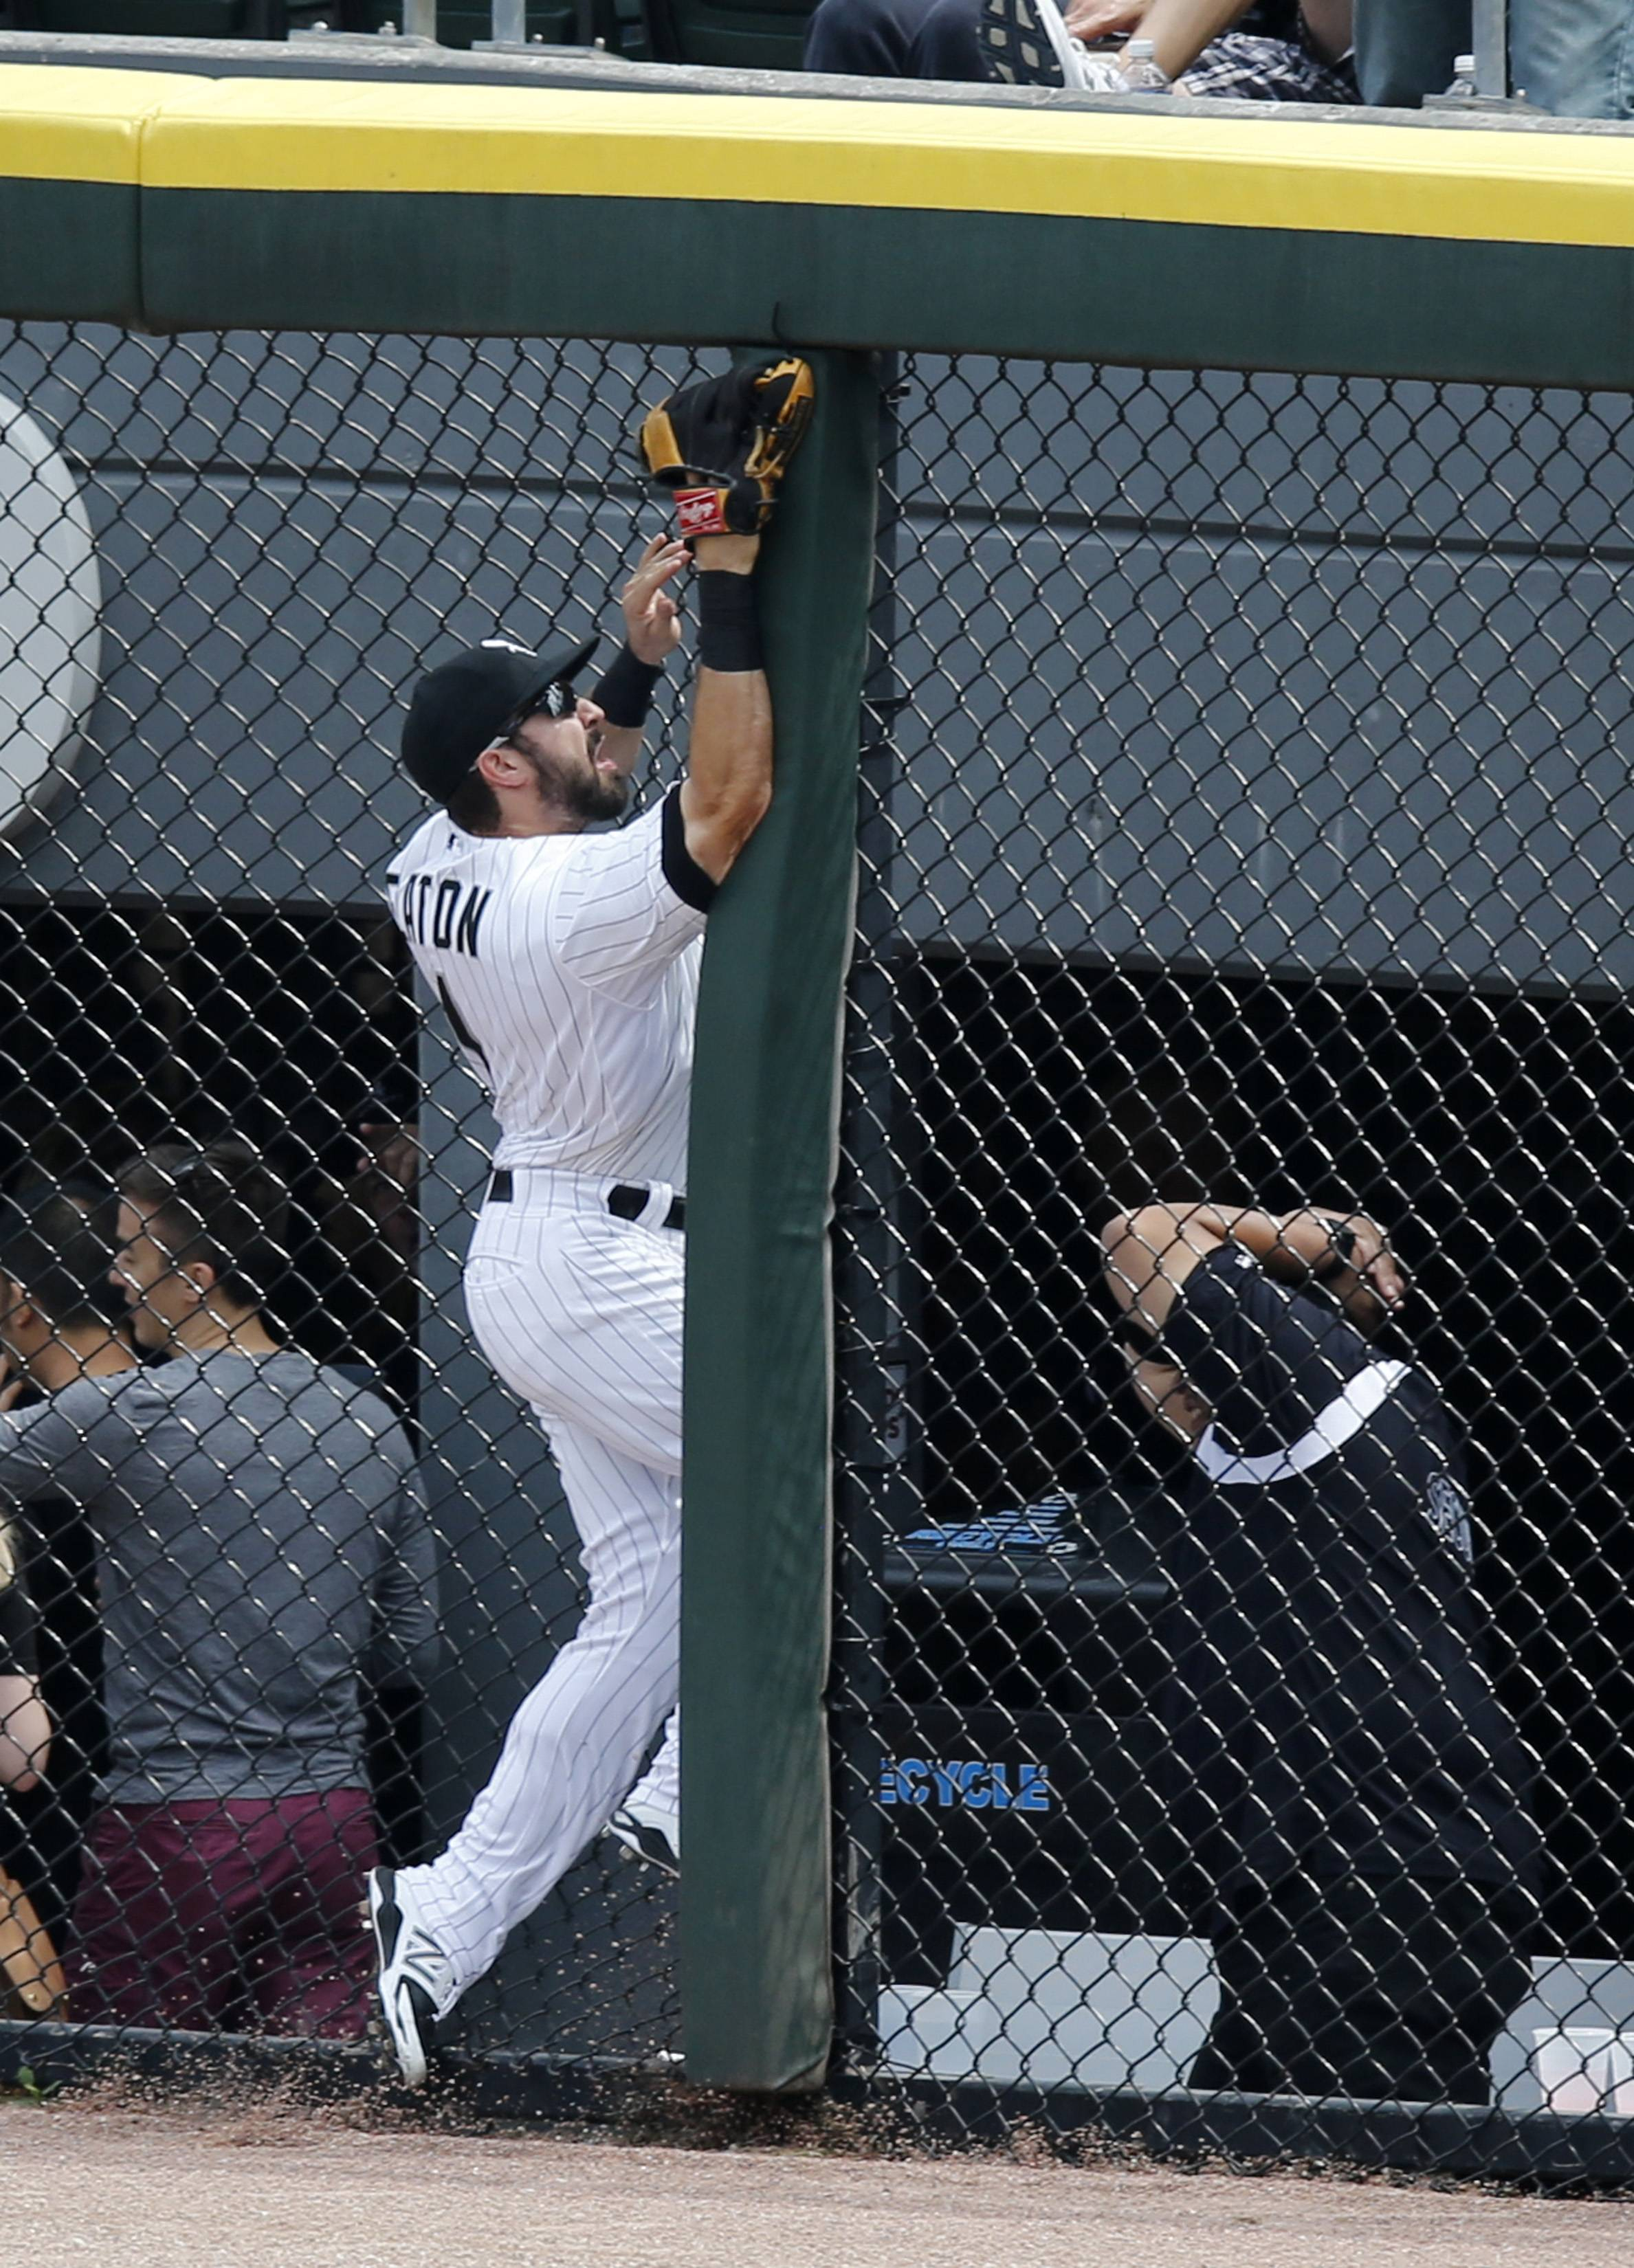 White Sox center fielder Adam Eaton slams into the right center field fence chasing a two-run home run by Texas Rangers' Adam Rosales during the second inning of a baseball game Wednesday.